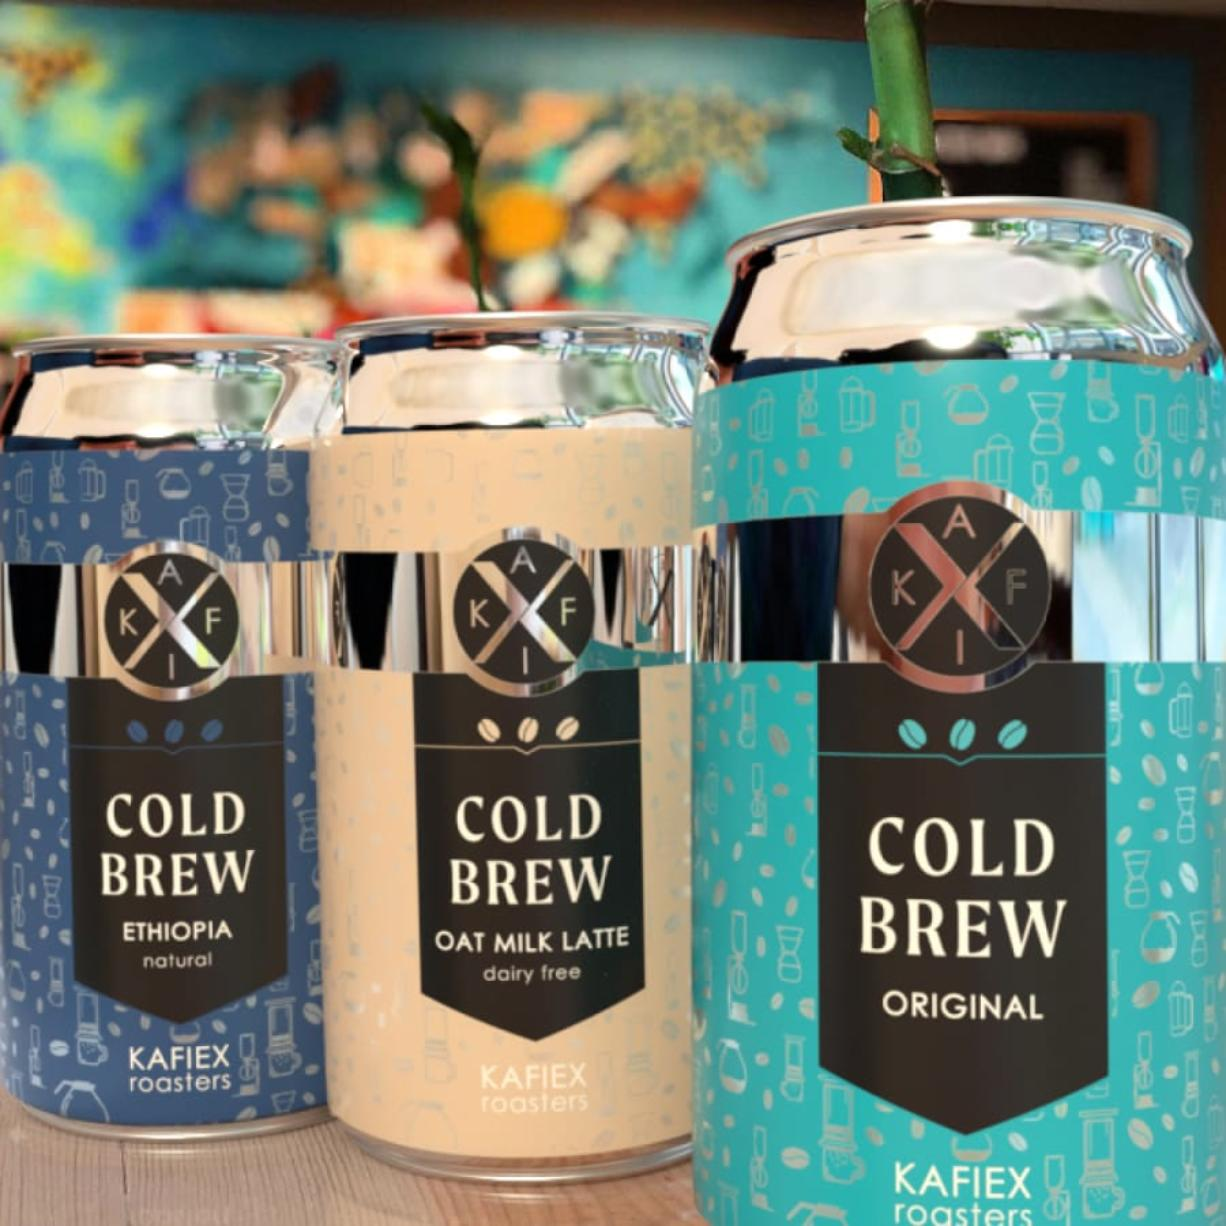 Kafiex Roasters had long wanted to can cold brew, and the pandemic pushed it to the top of the shop's to-do list.